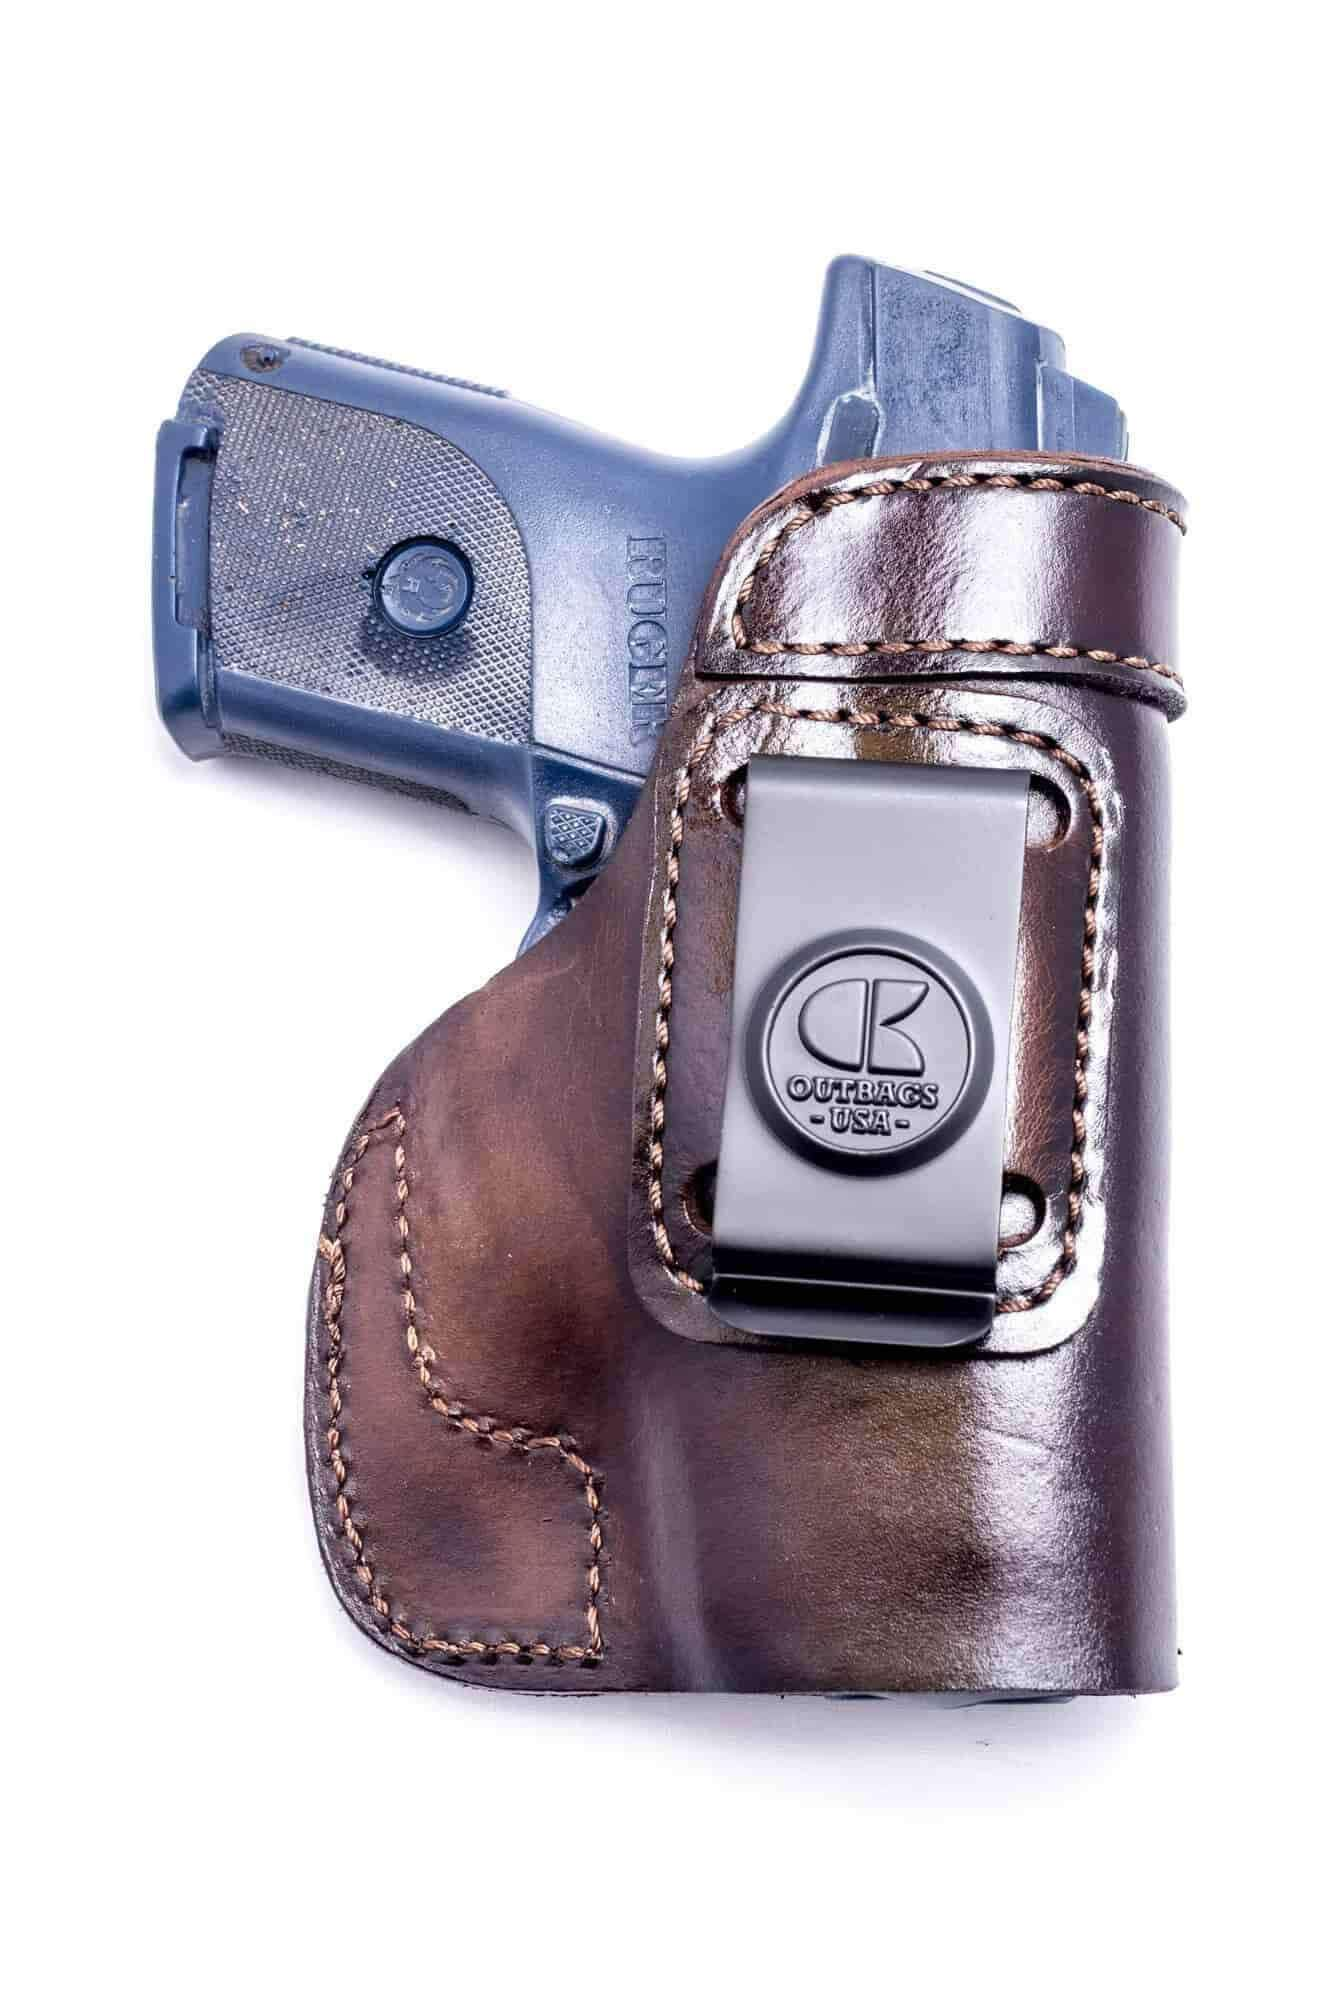 Outbags LOB3S Brown Leather IWB Holster